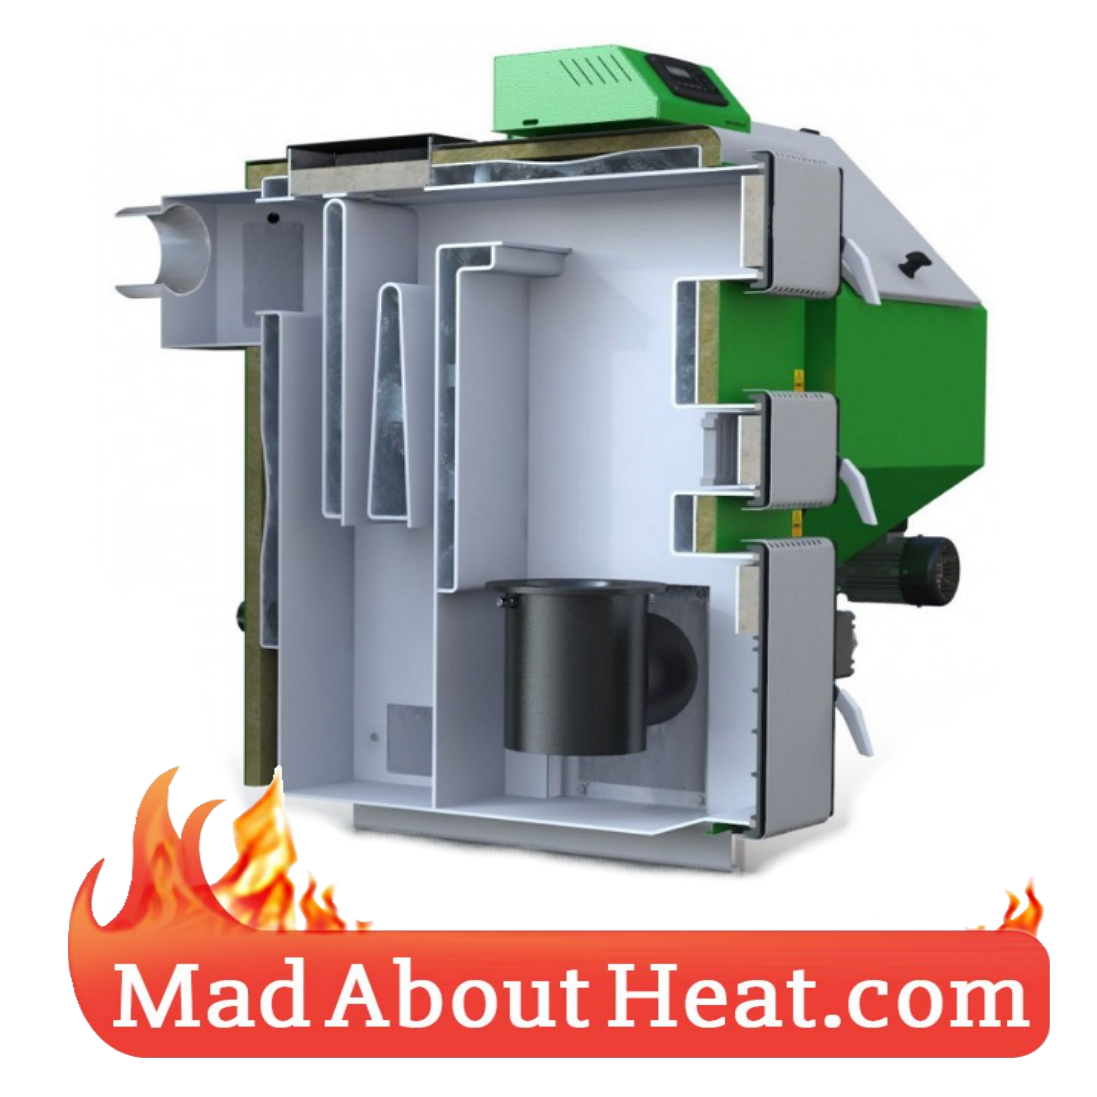 CTBi 200kW Commercial Automated Wood Pellet Biomass Coal Central Heating  Boiler